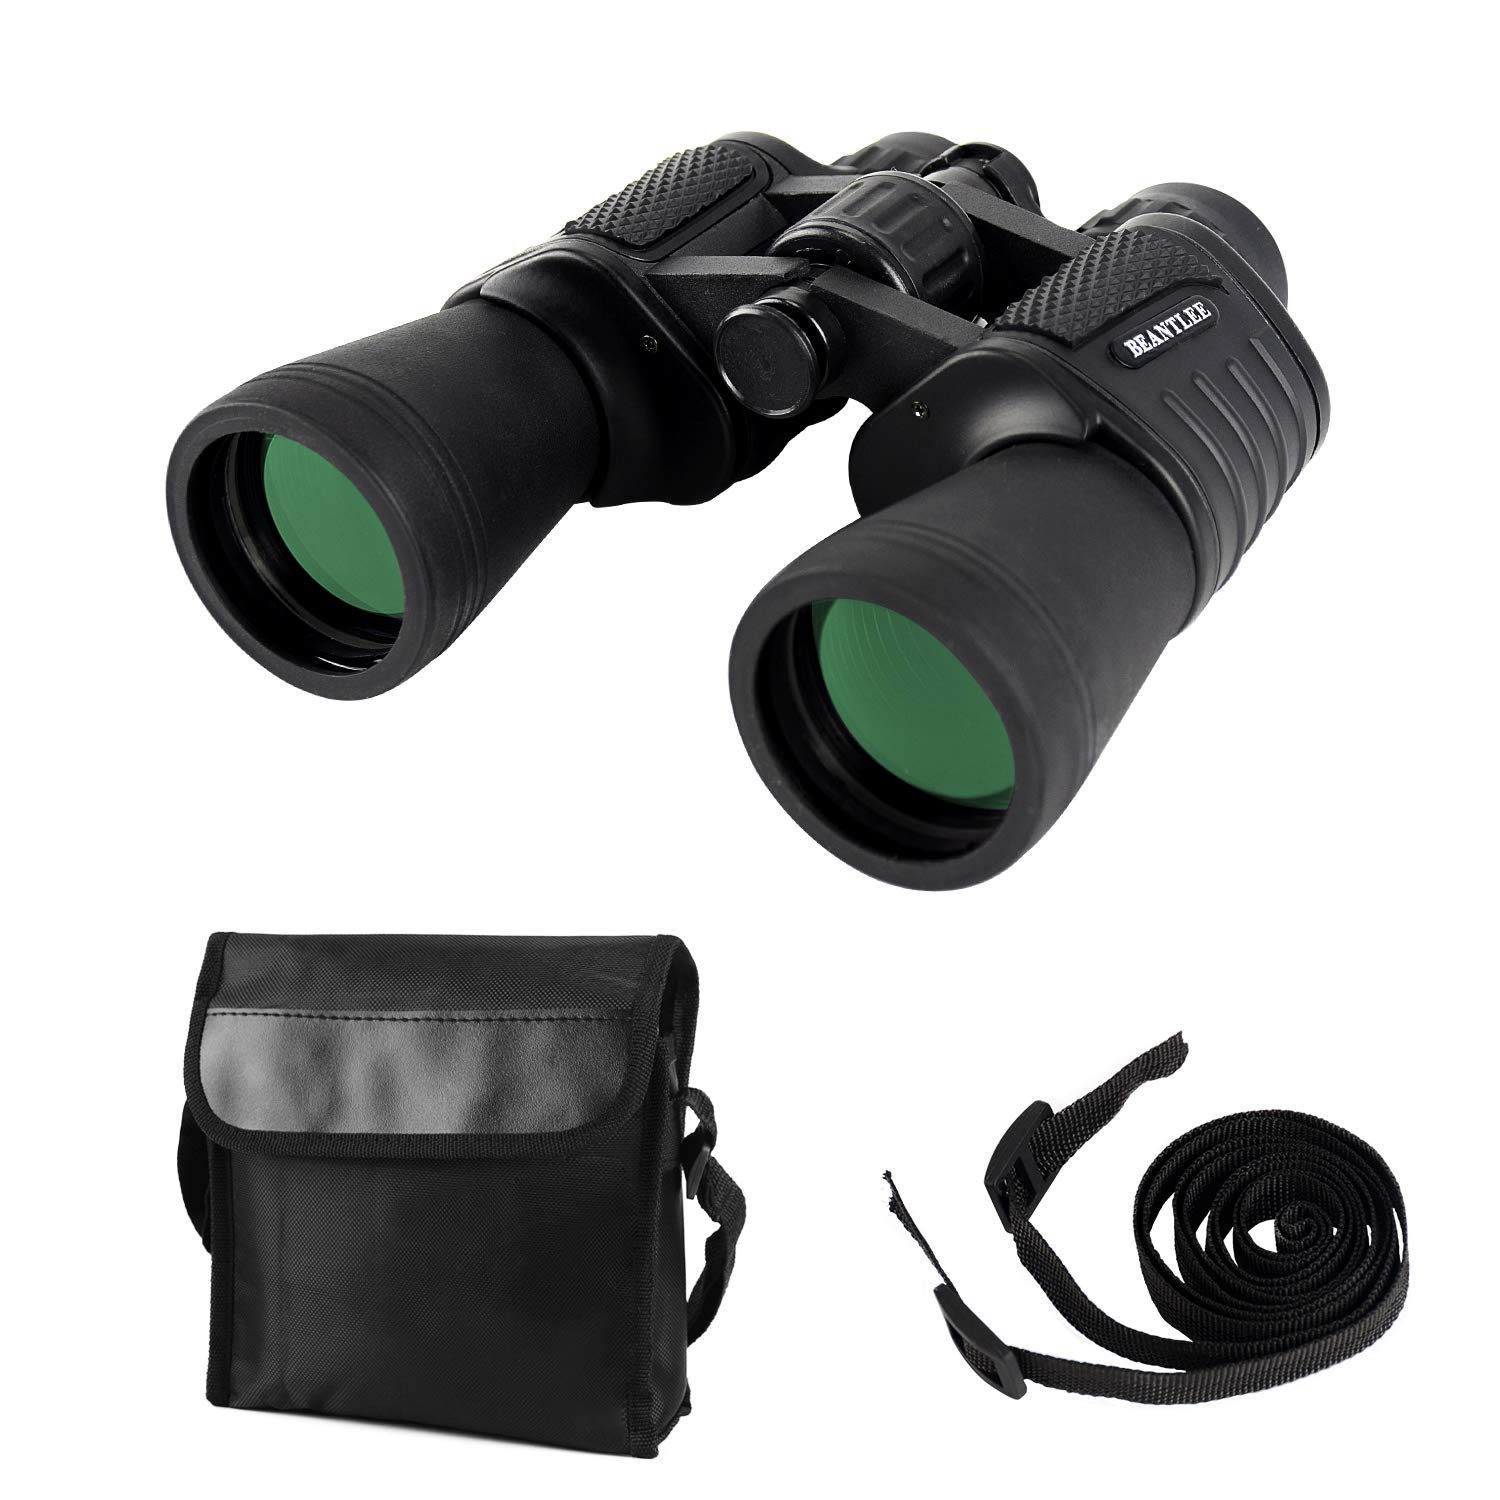 20X50 Binoculars for Adults, Durable and Clear Binoculars for Bird Watching, Hunting, Travel, Hiking, Sports Games, with Cloth Bag